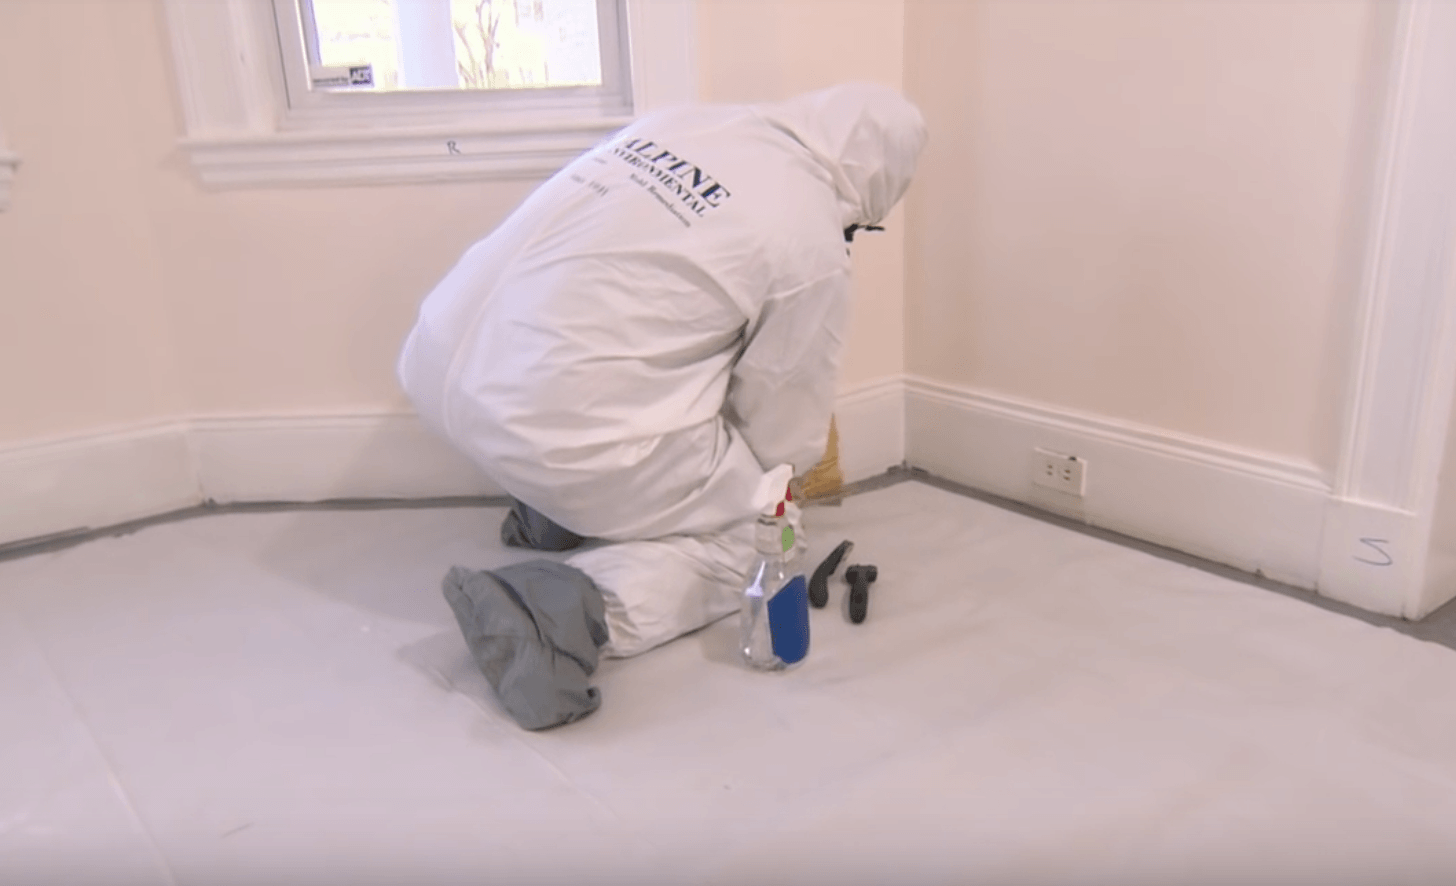 Lead paint removal